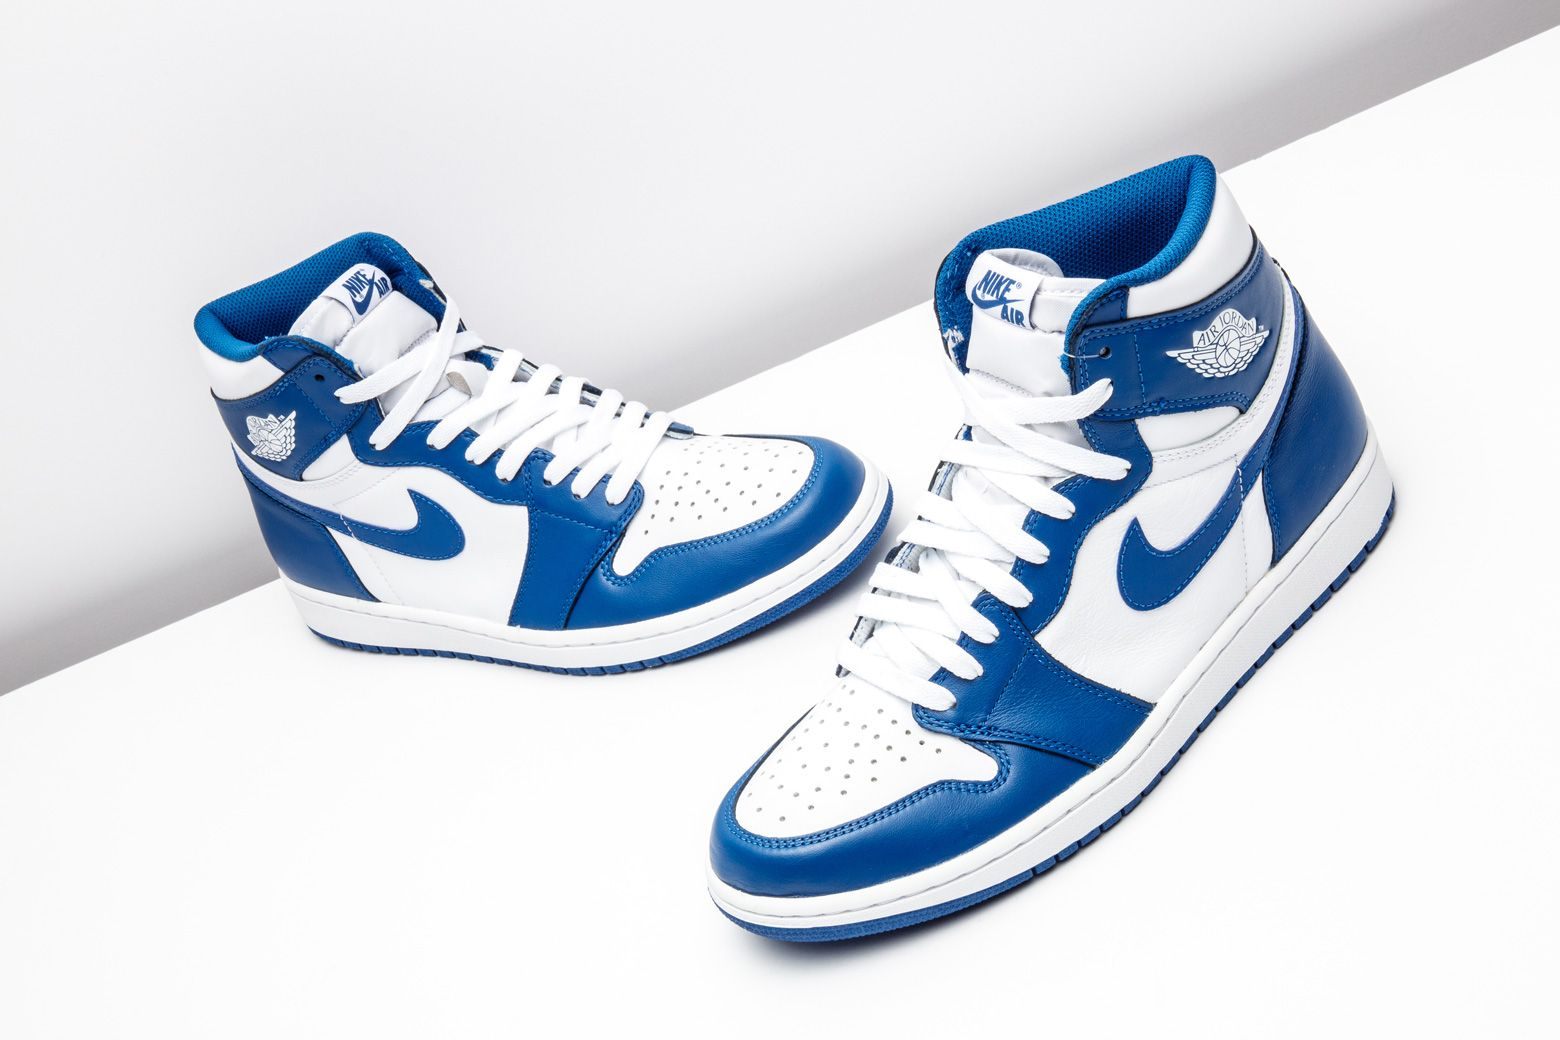 Air Jordan 1 Retro High Og Storm Blue 555088 127 Jordan 1